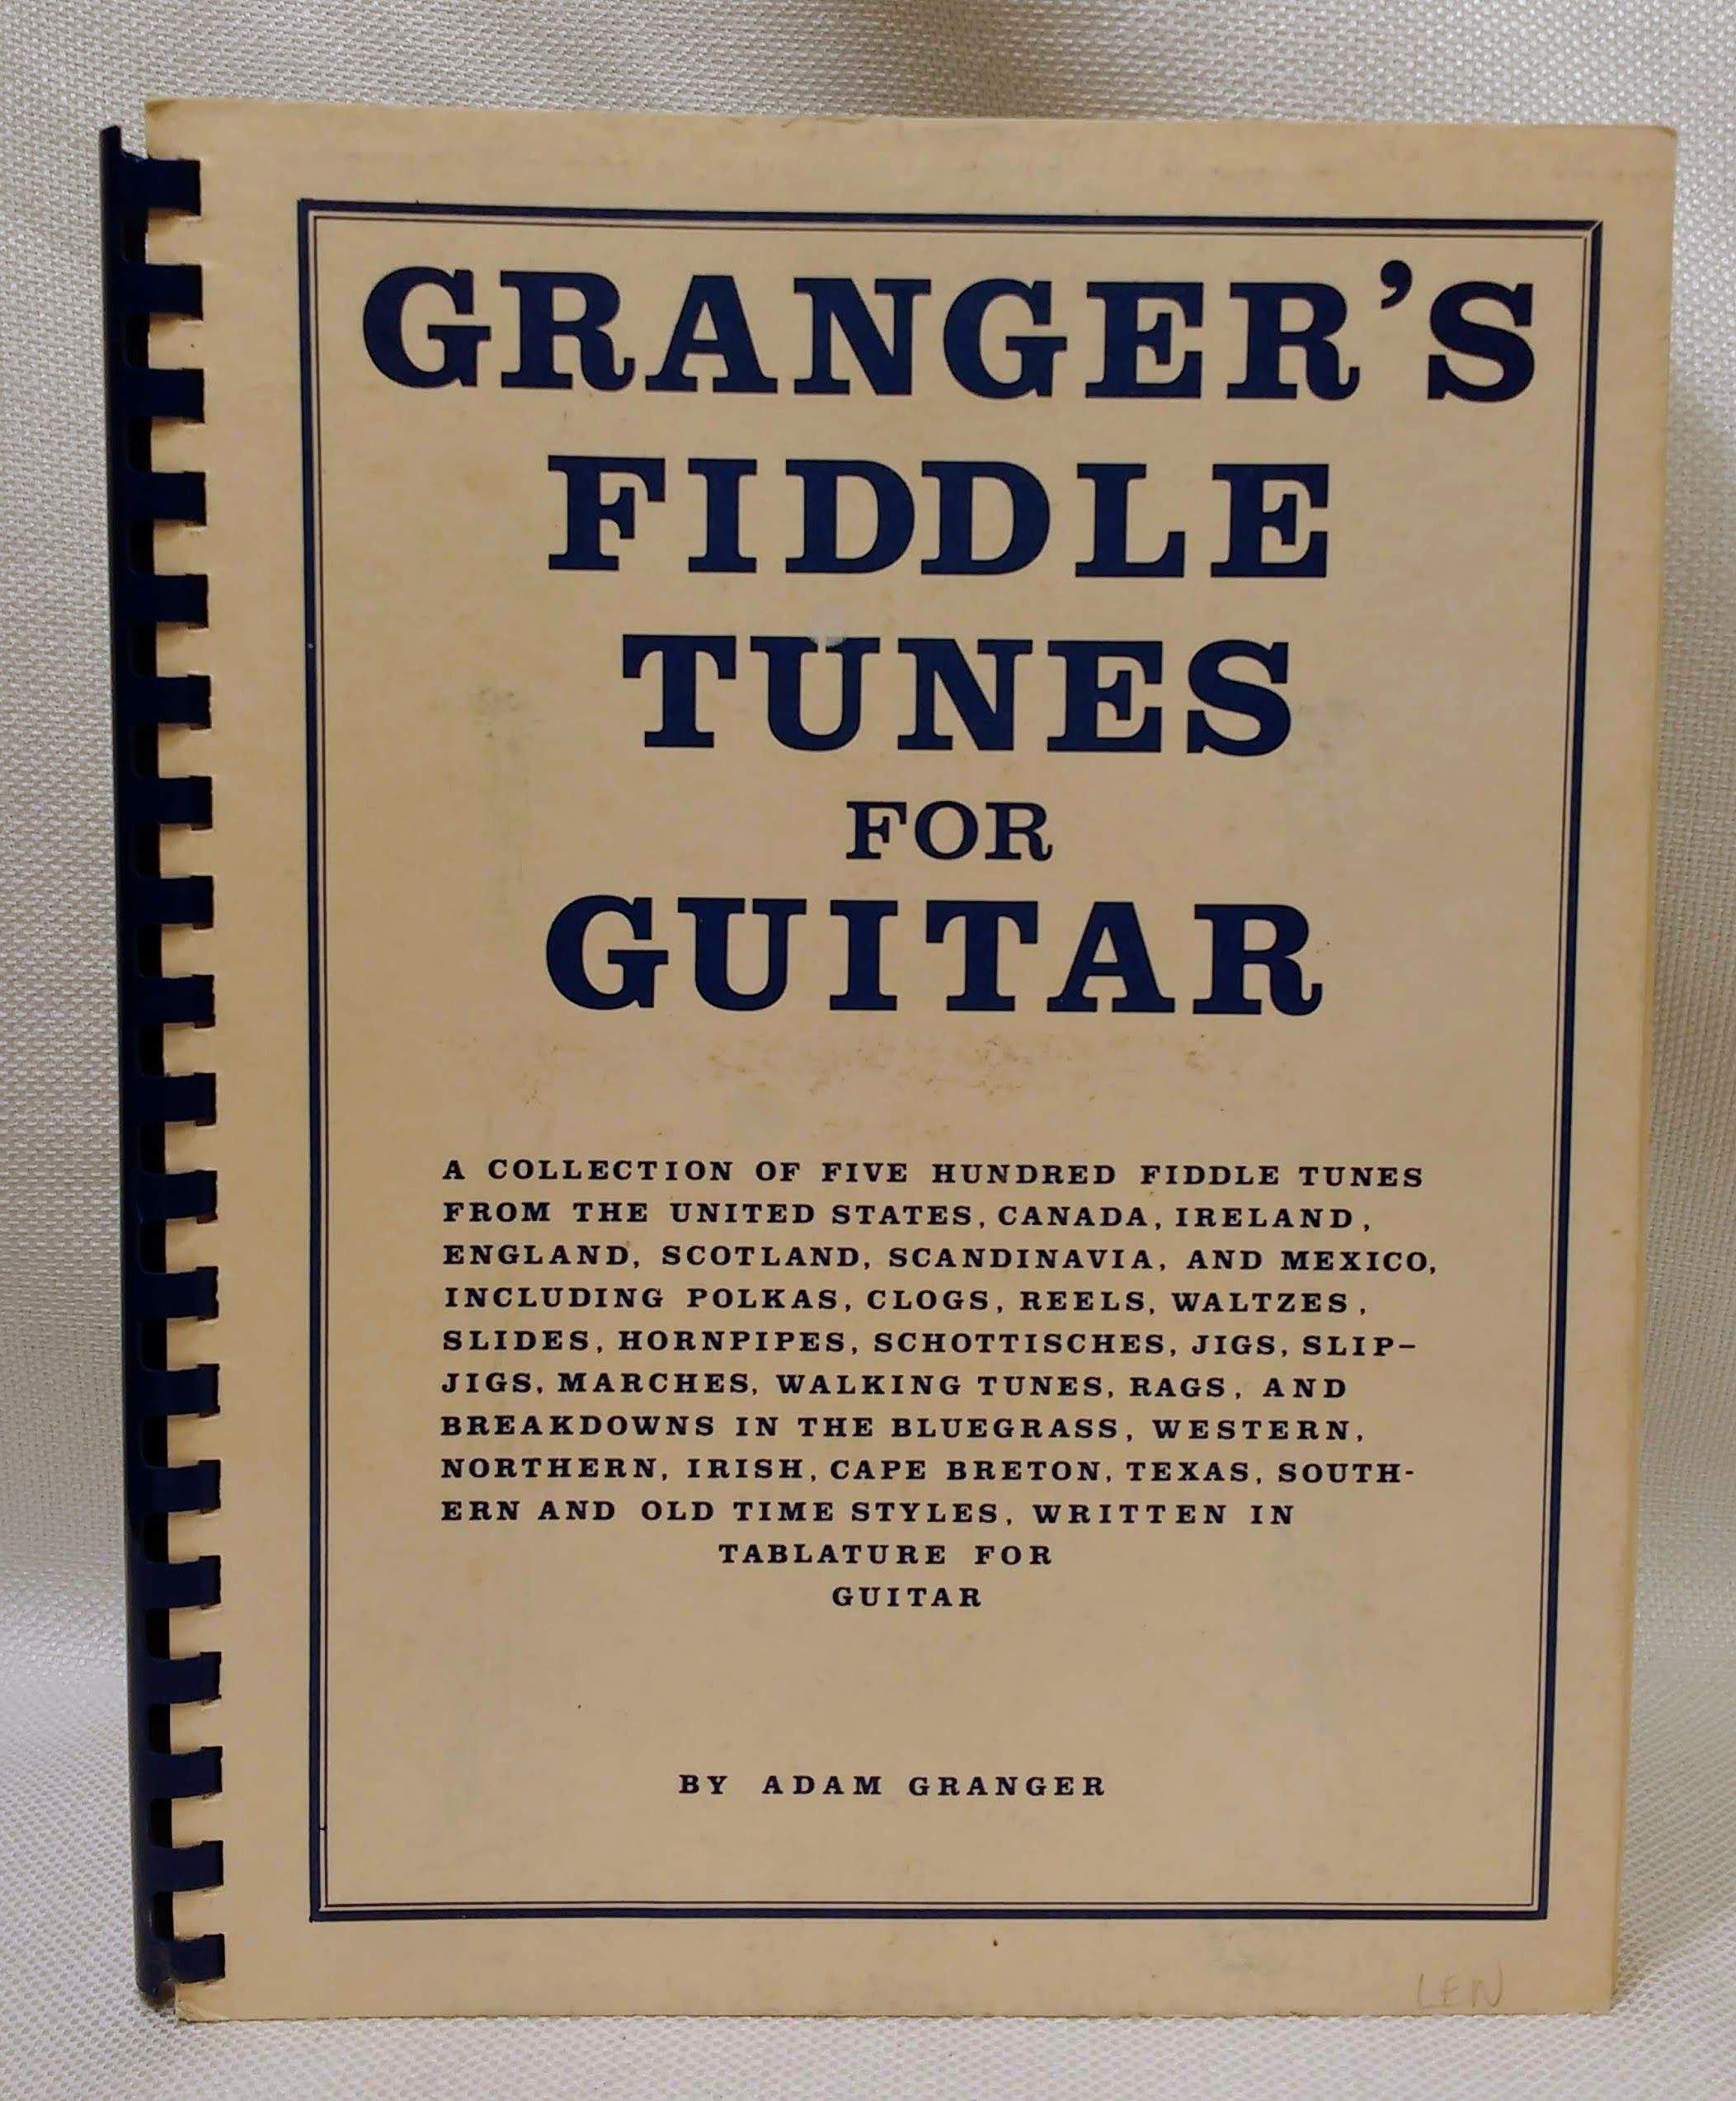 Granger's Fiddle Tunes for Guitar, Adam Granger